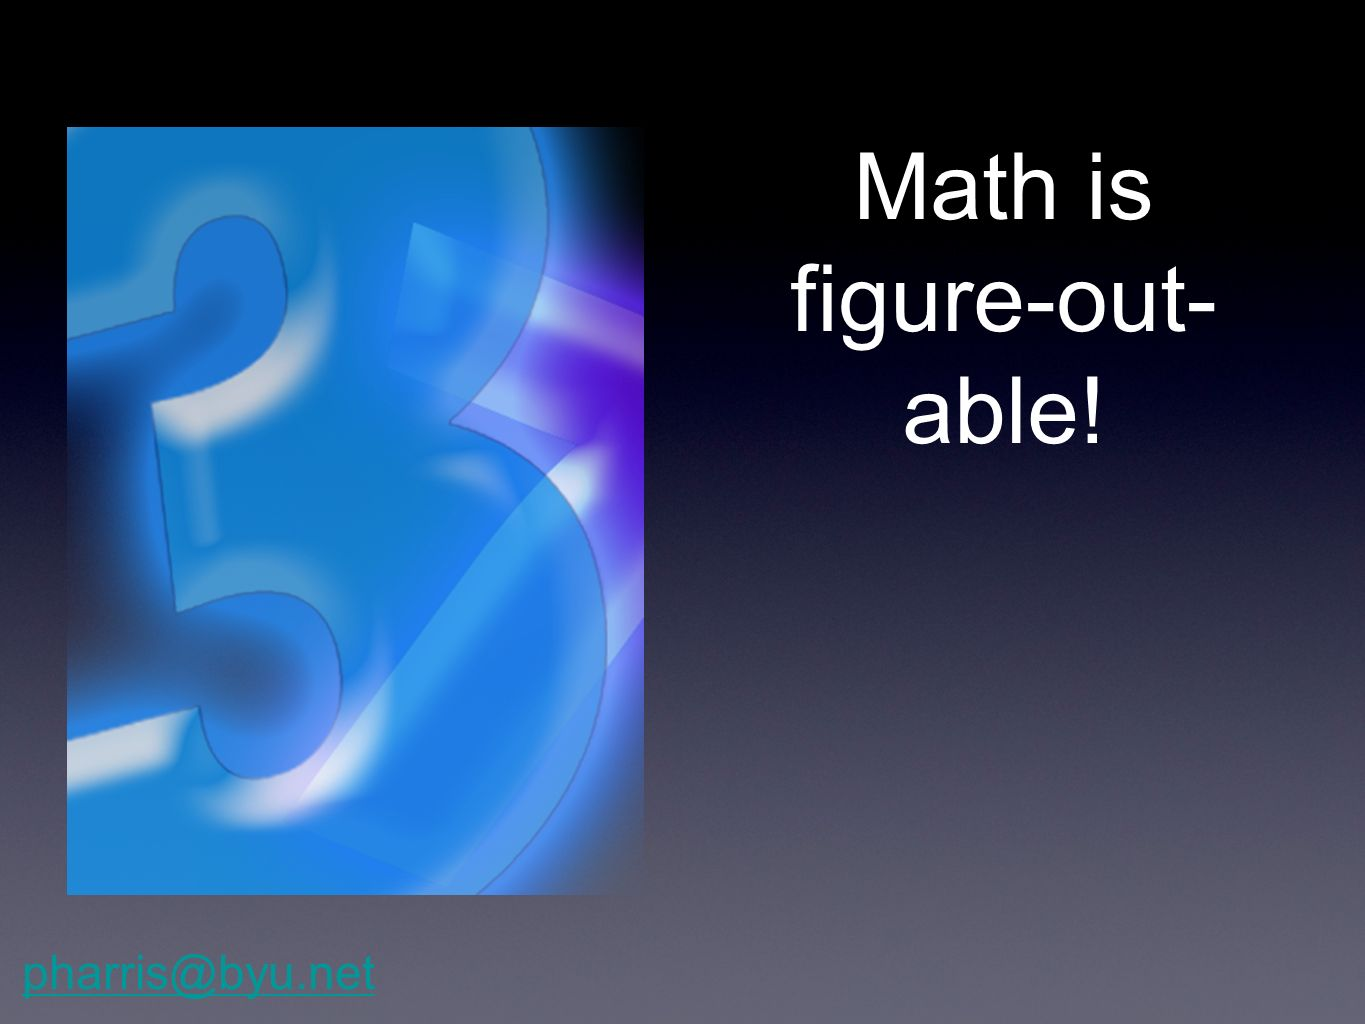 Math is figure-out-able!